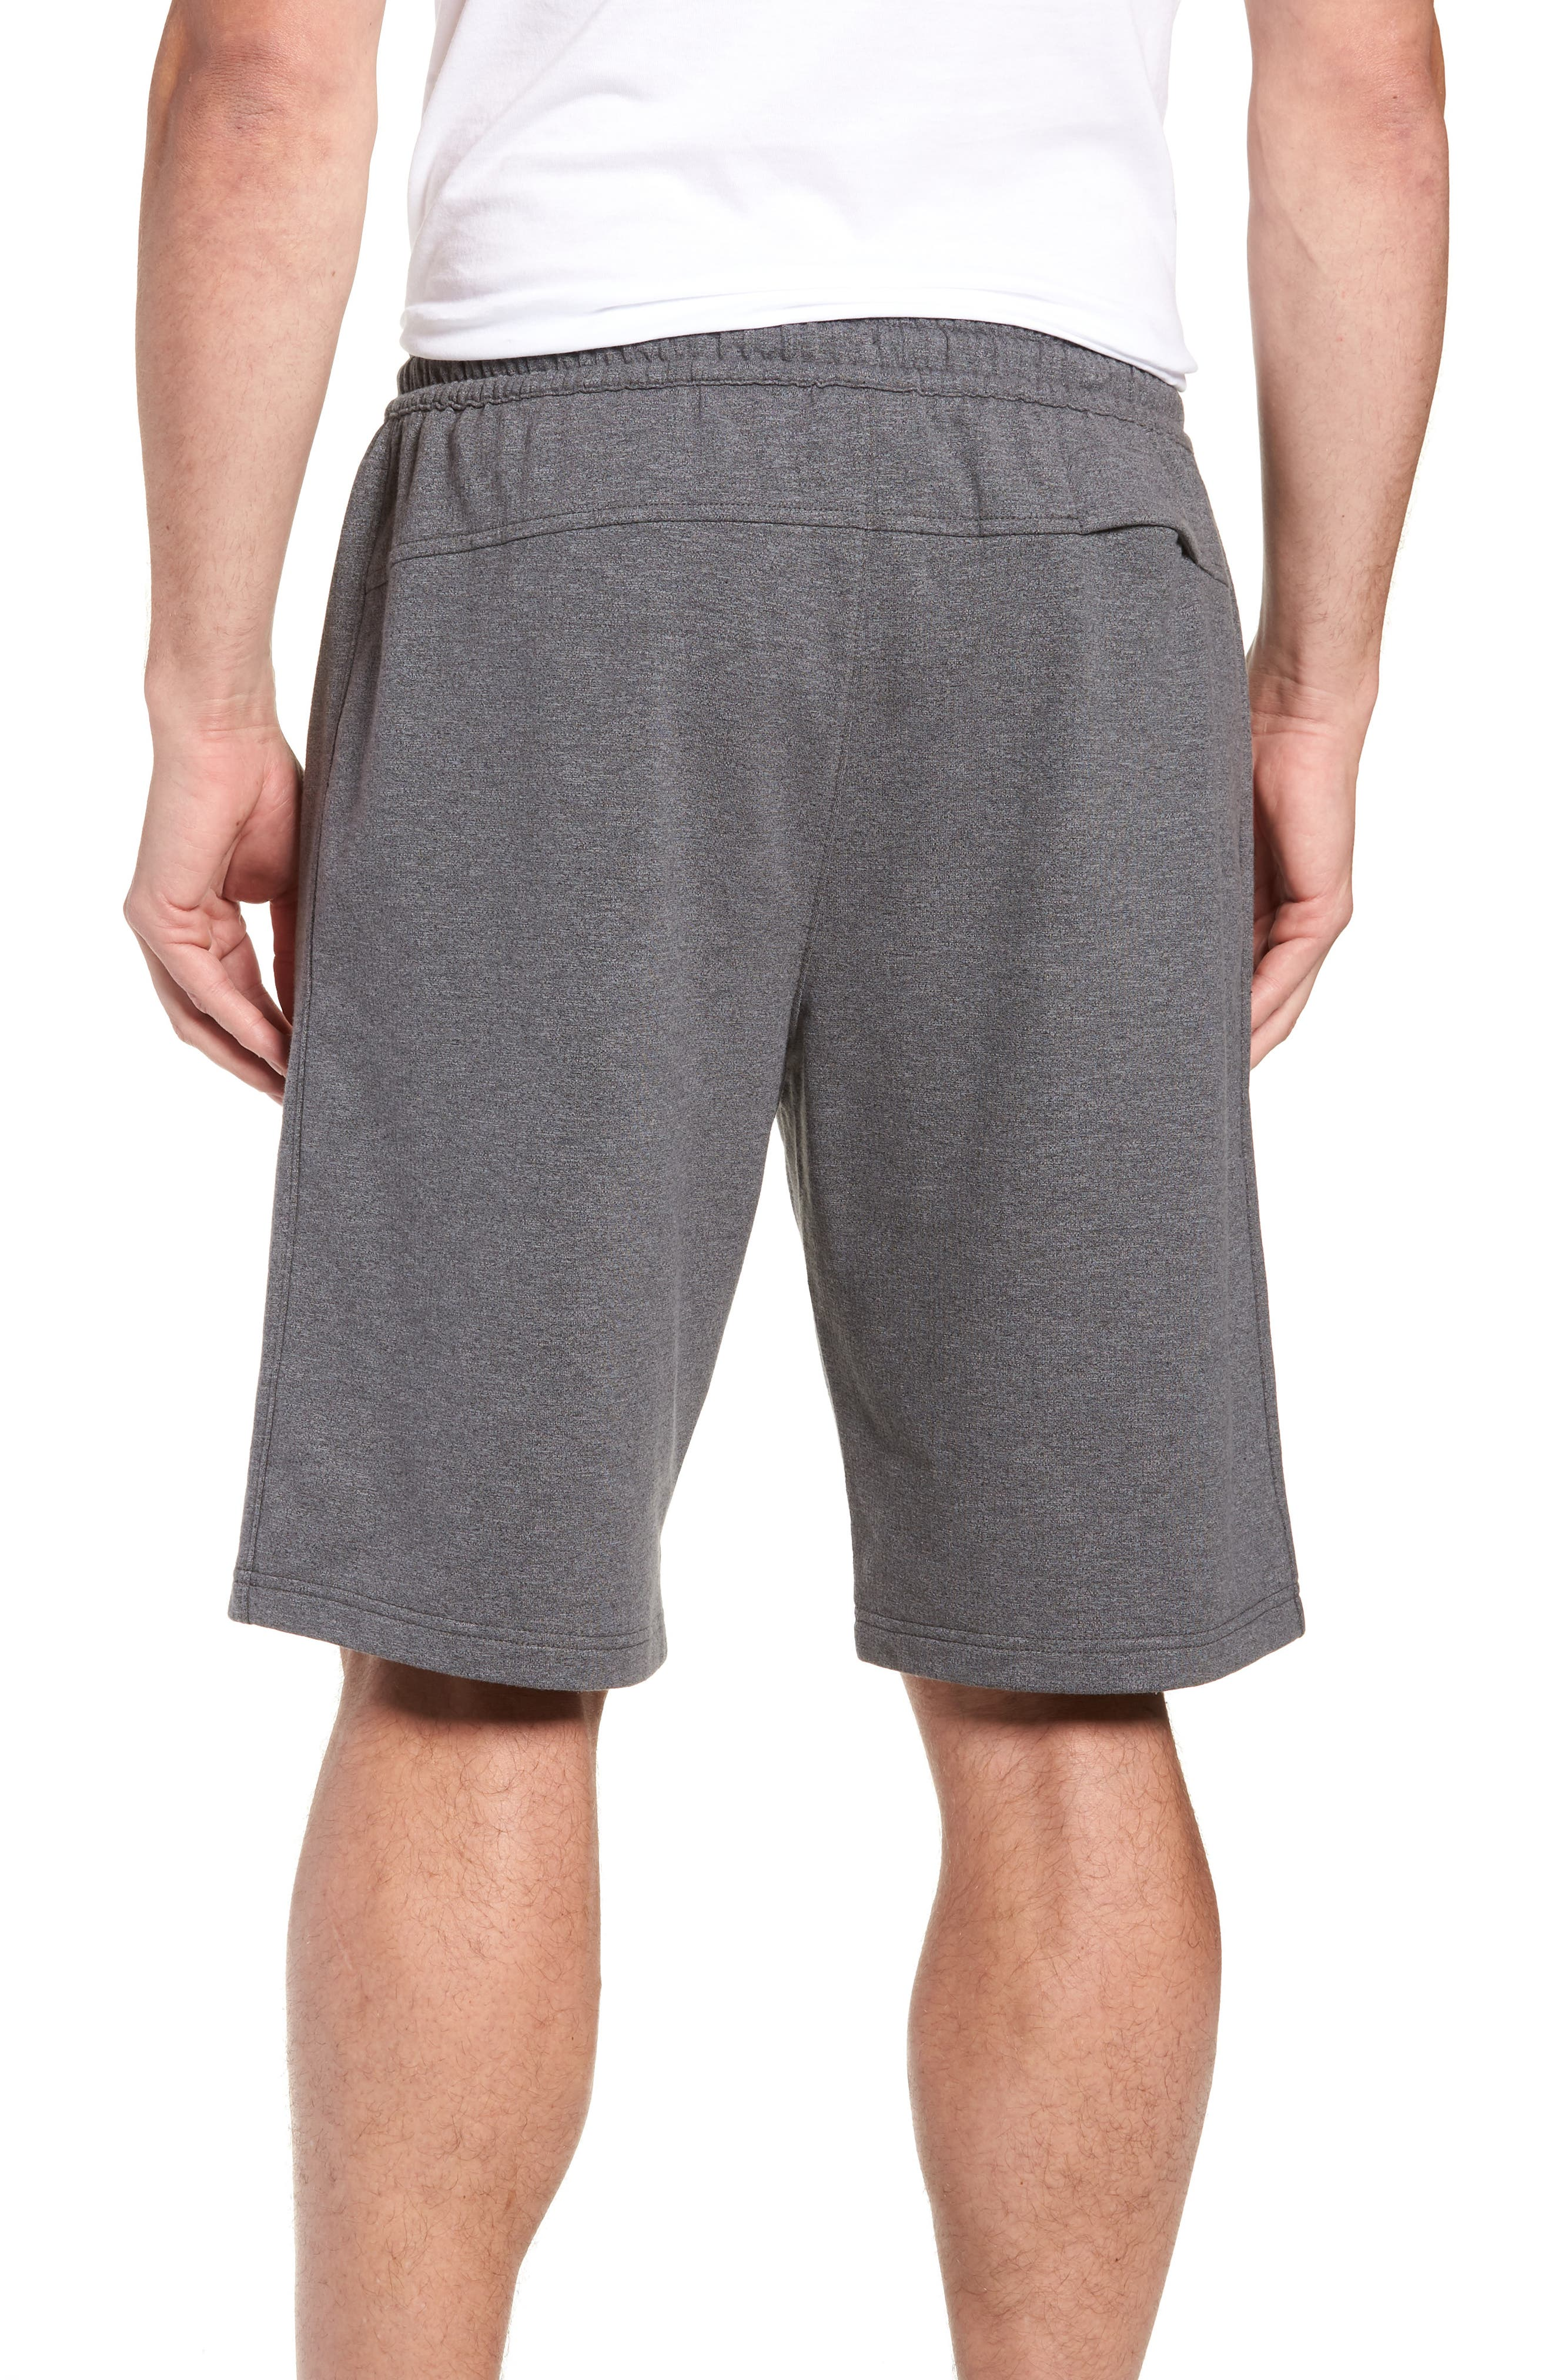 Arcanite Knit Shorts,                             Alternate thumbnail 2, color,                             021